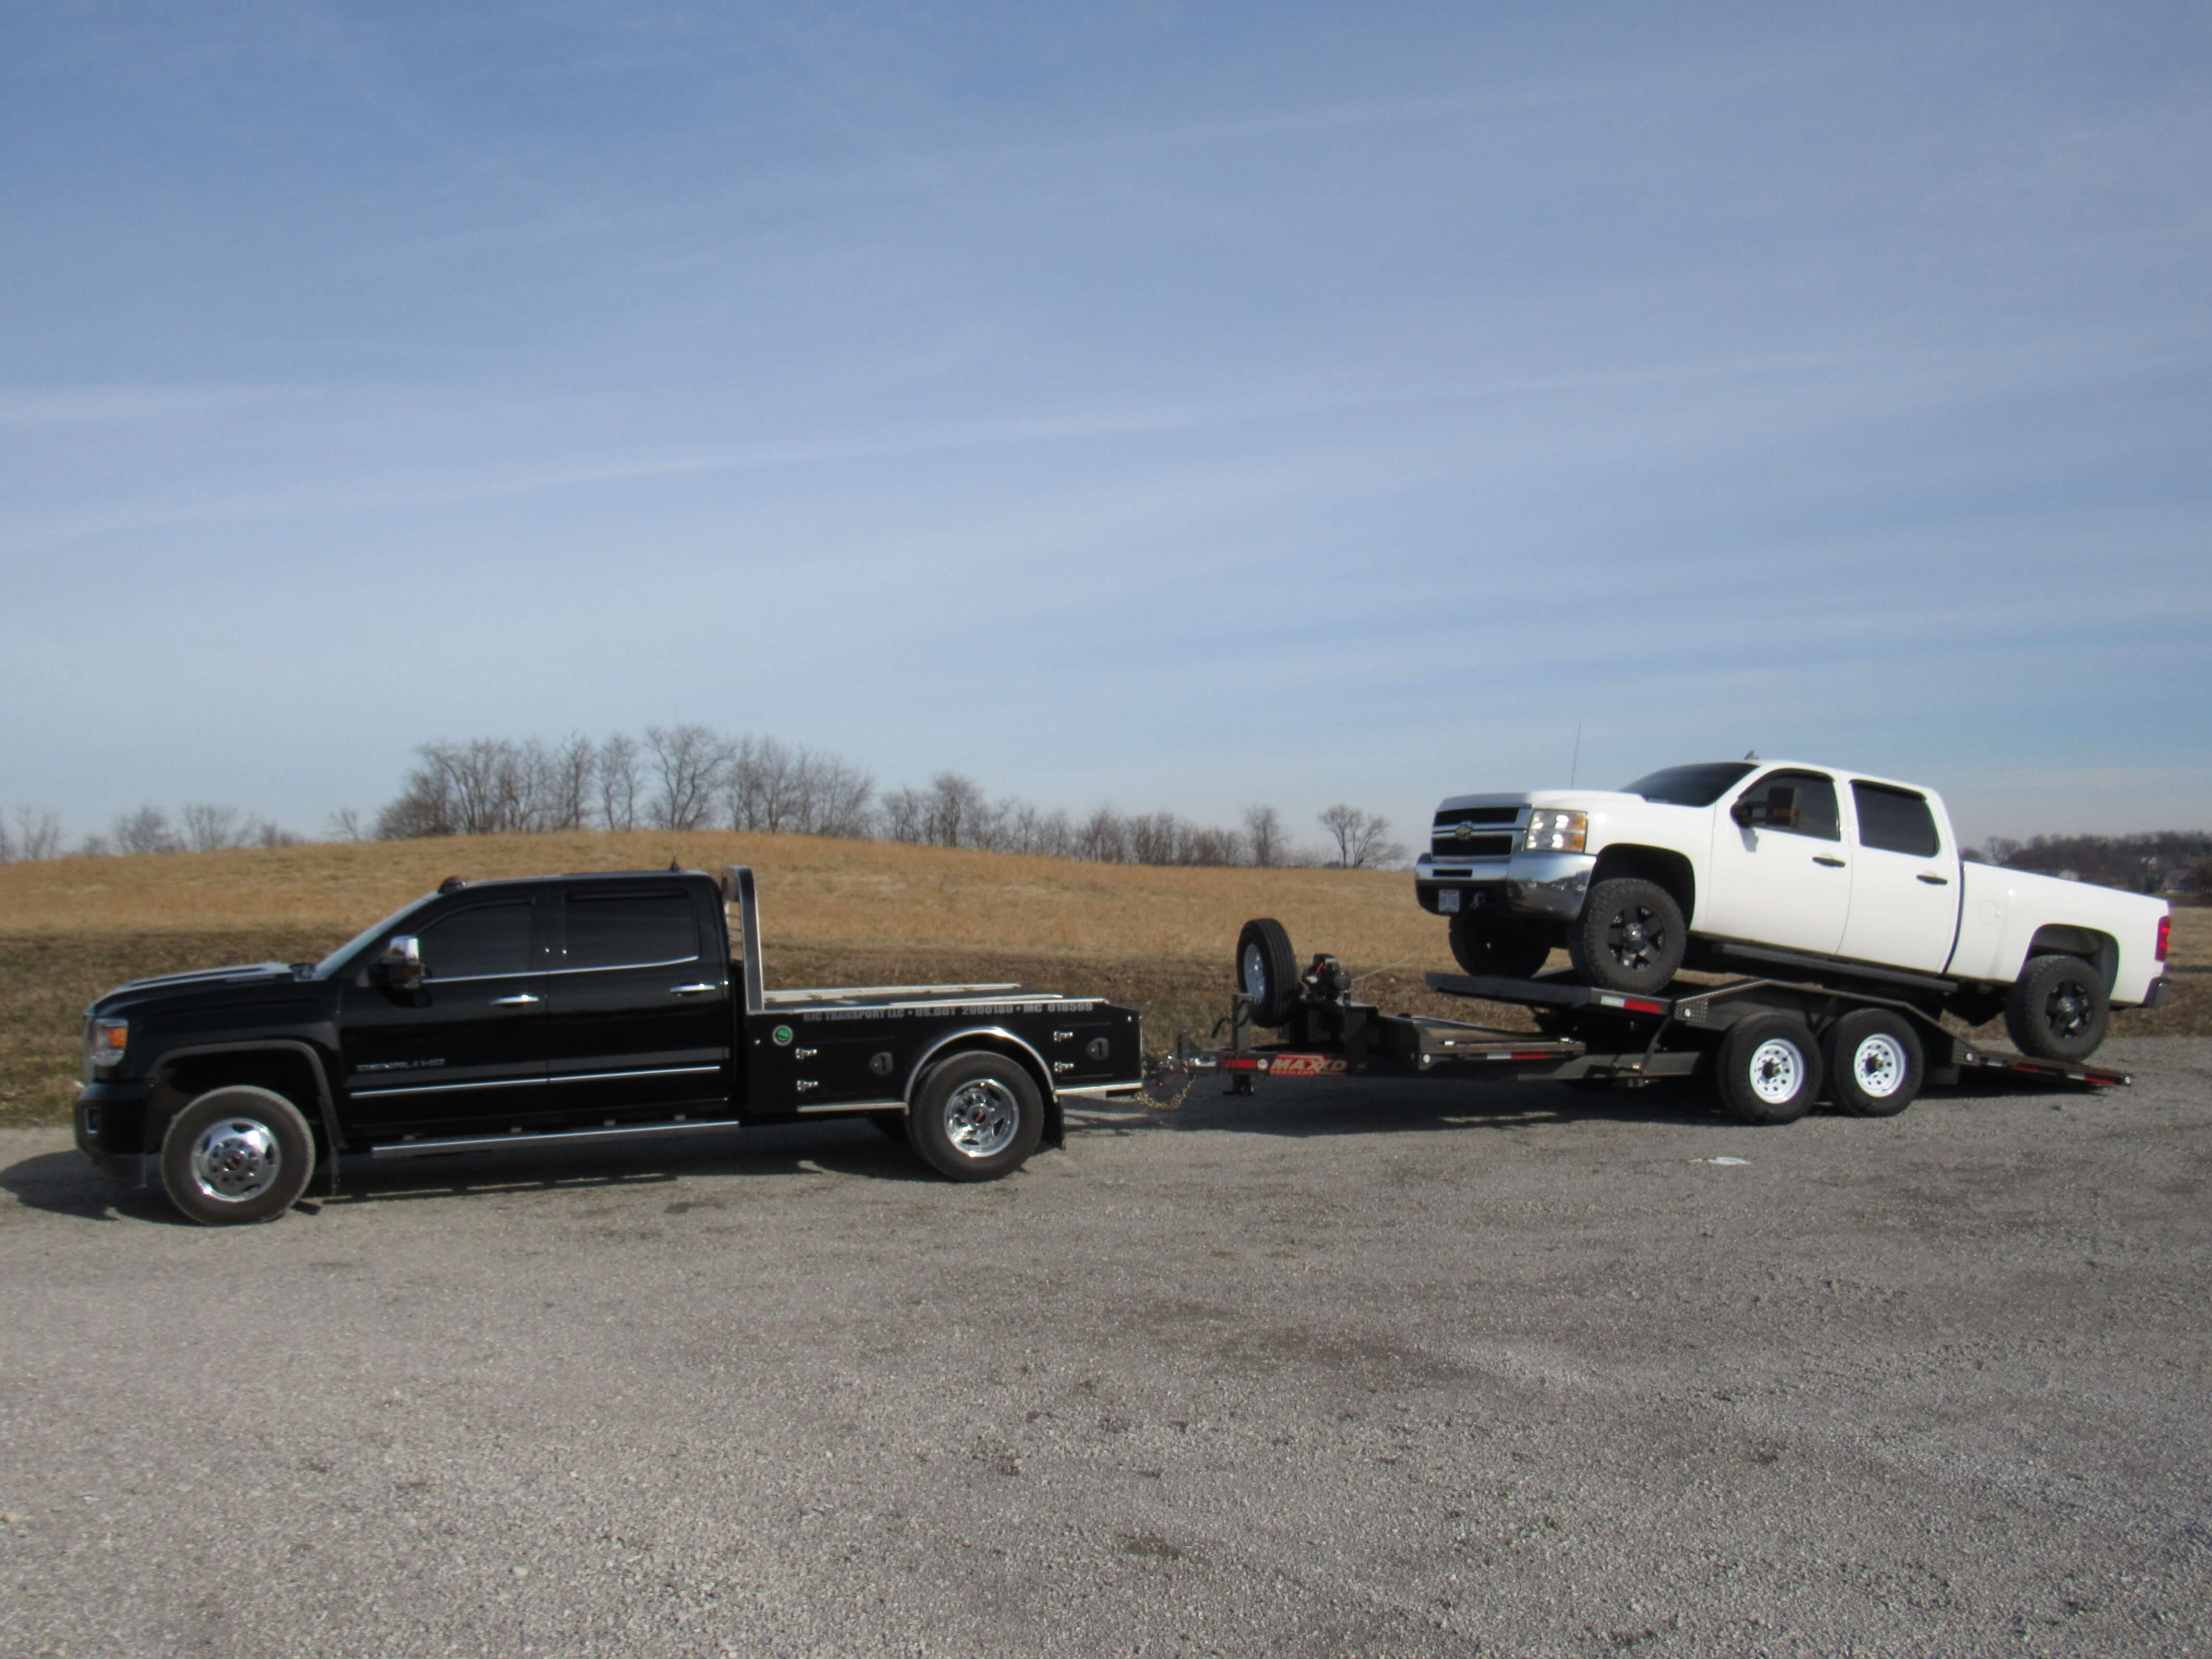 Picture of: Trailer Rentals Gingerich Trailer Sales Millersburg Ohio Truck Beds For Sale